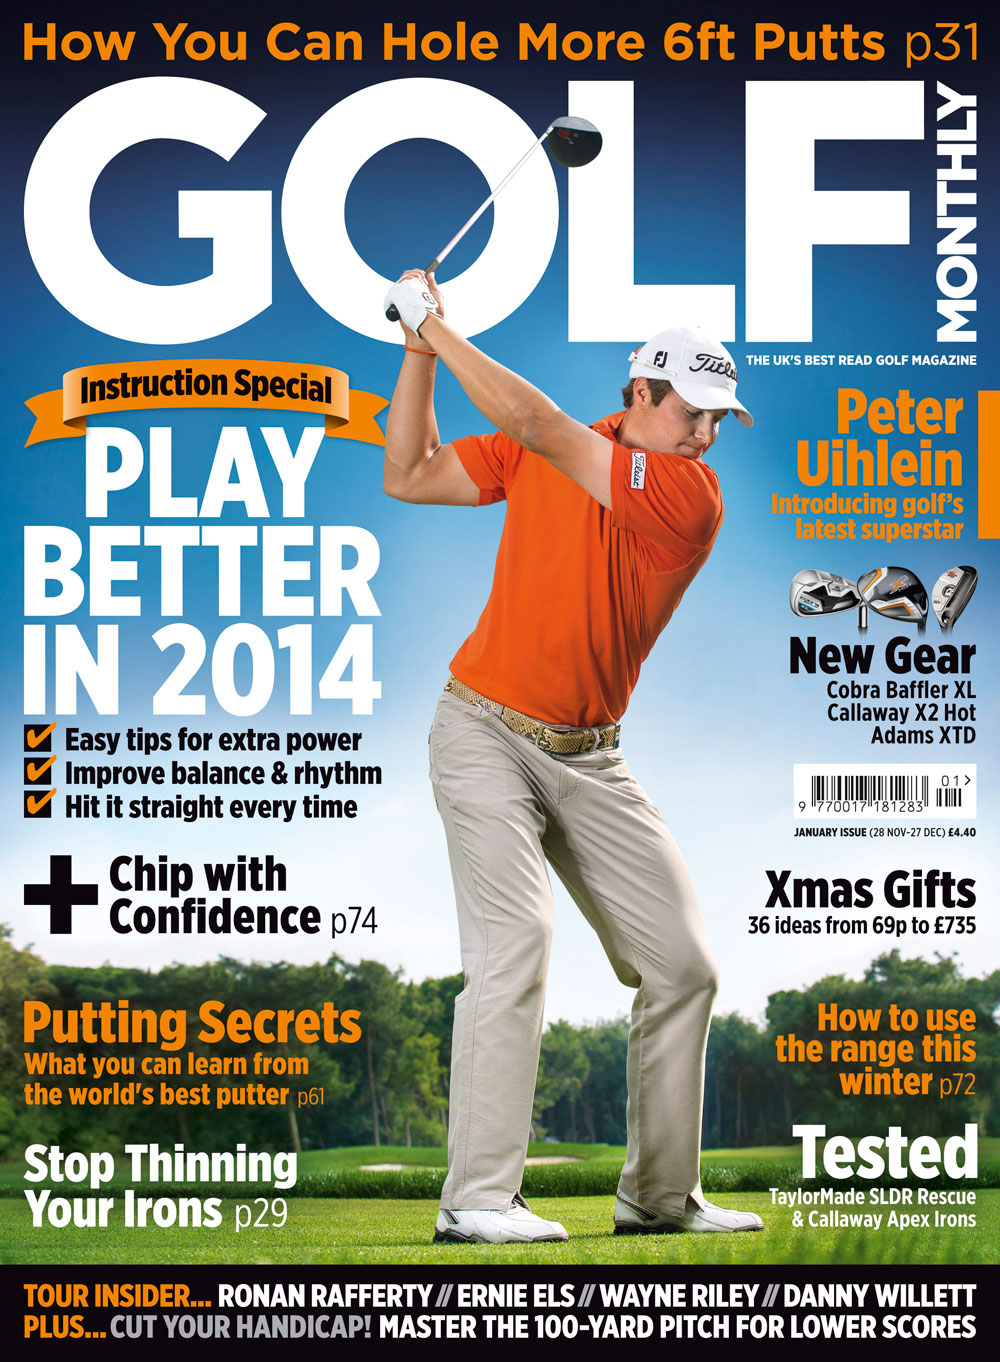 golf monthly editor u0026 39 s letter january 2014 issue